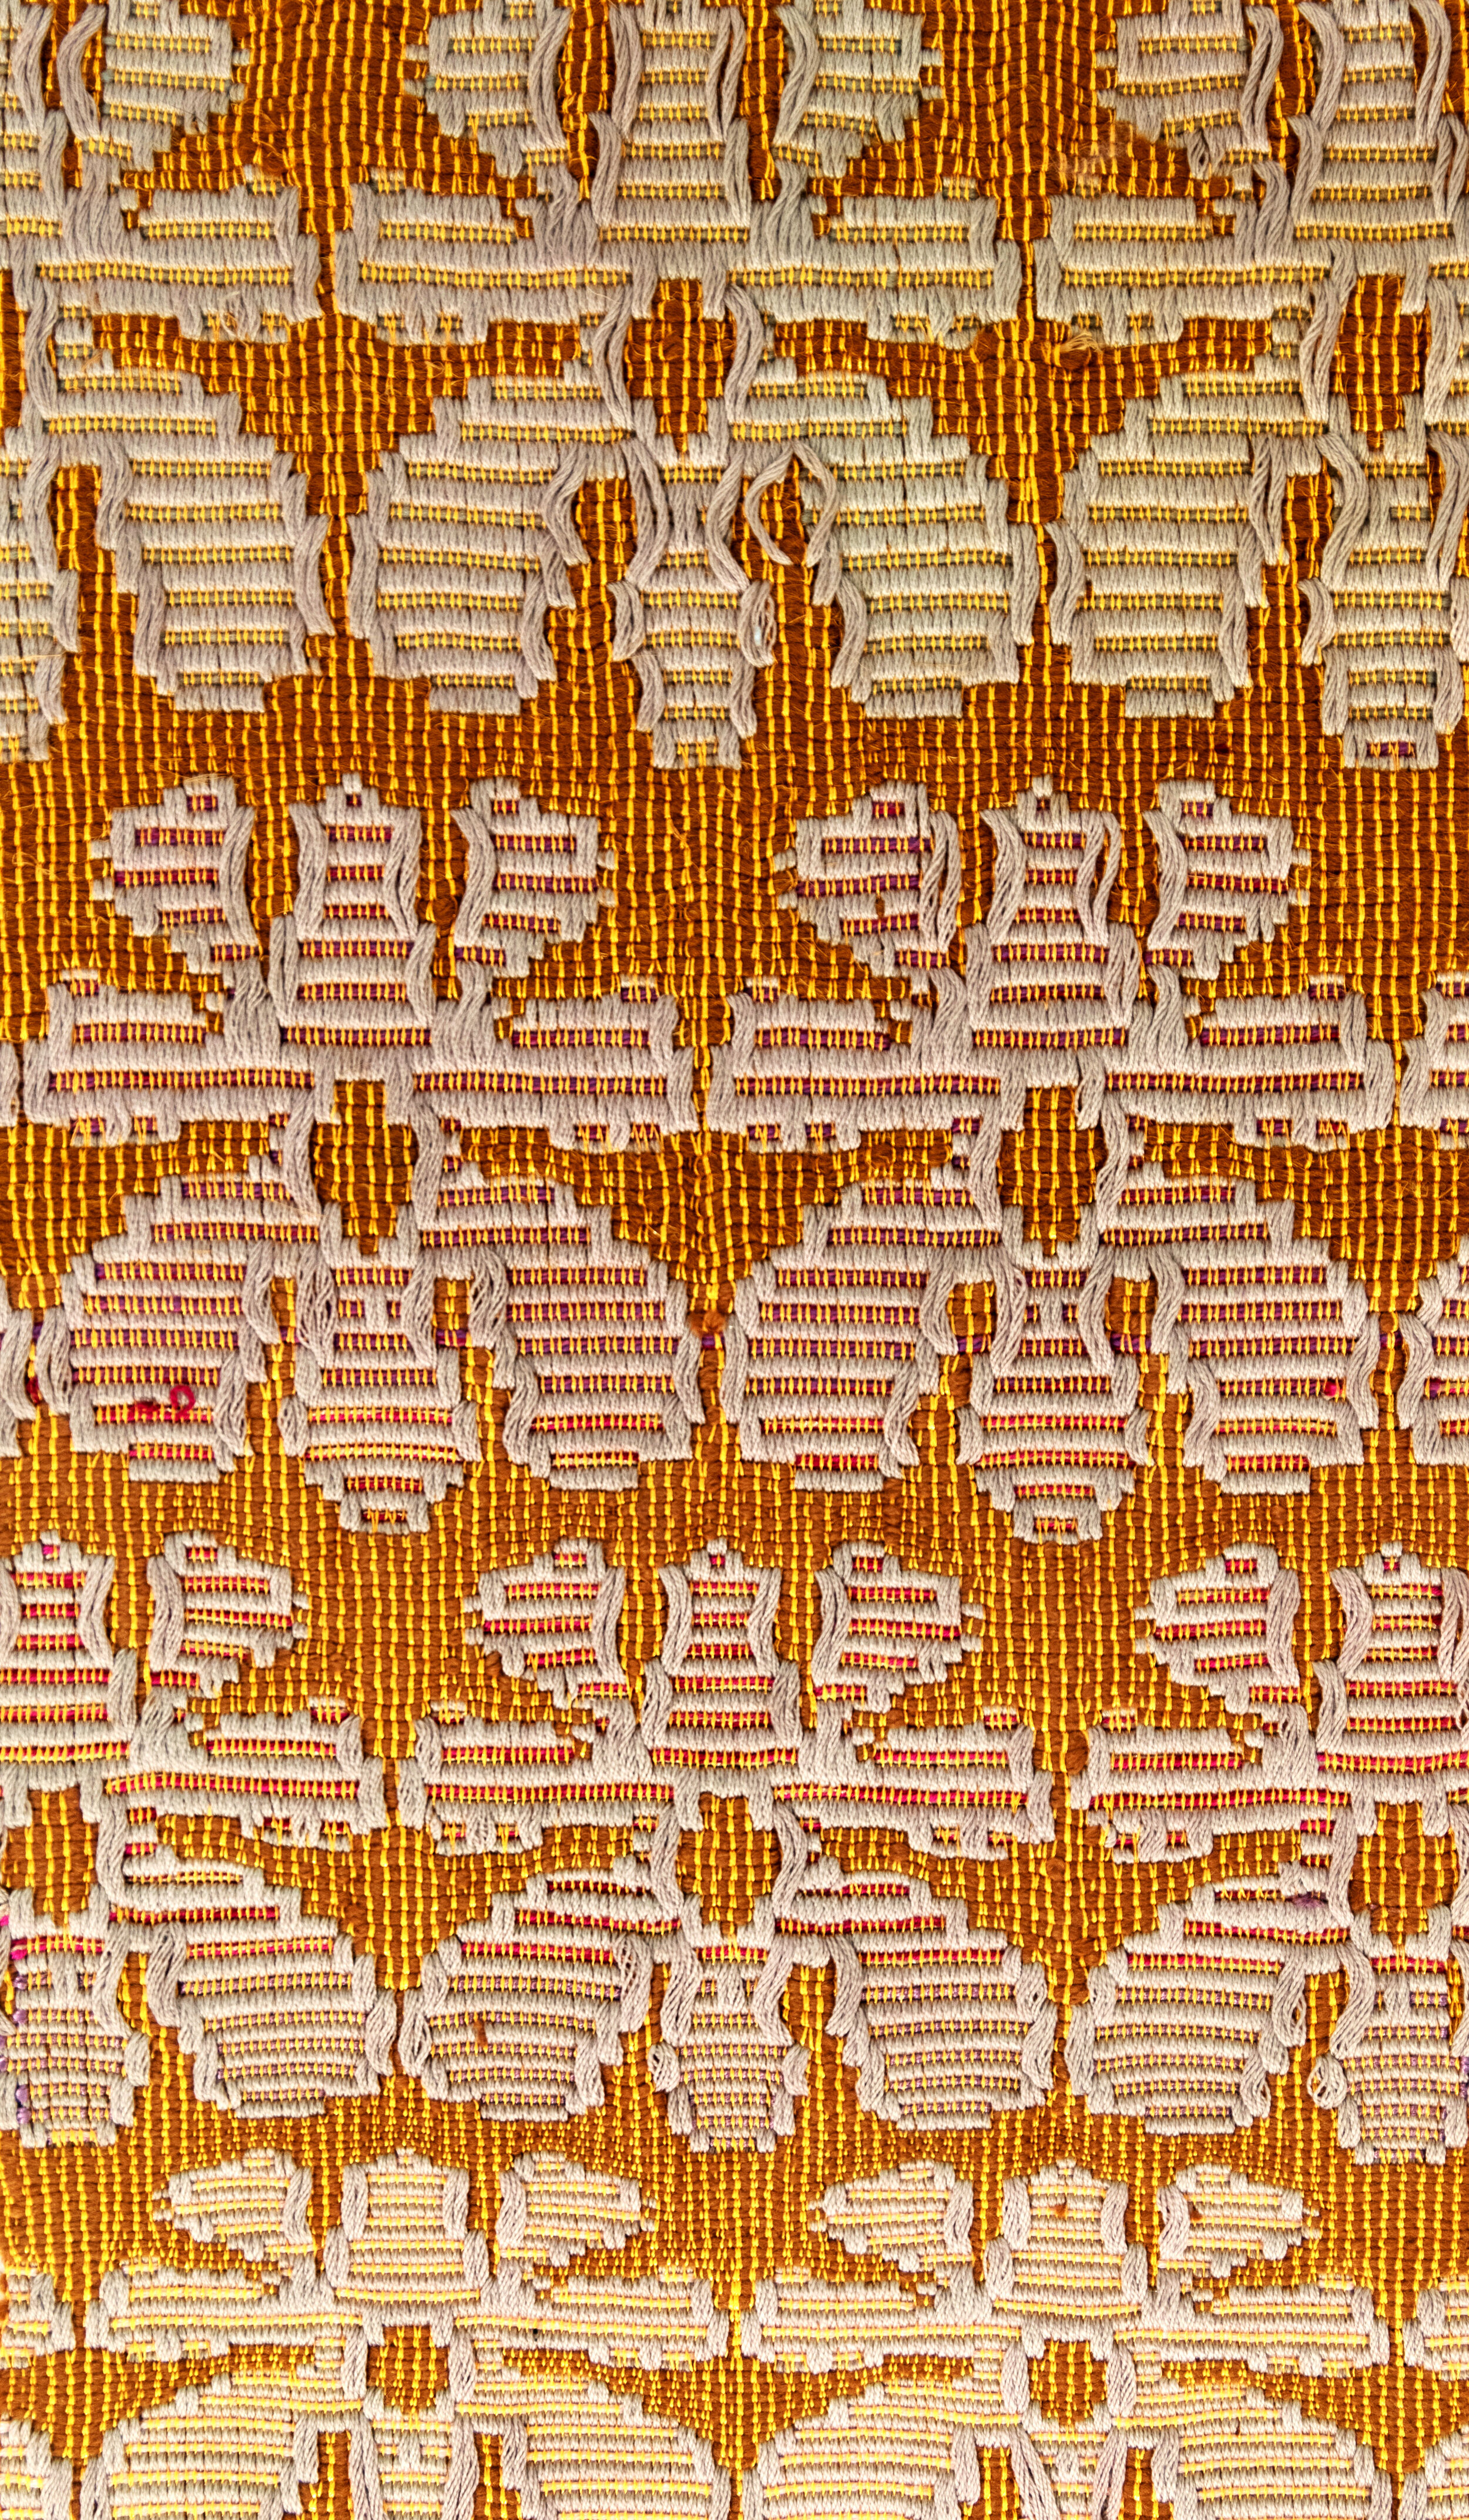 Textiles_2019_Documentation62.jpg